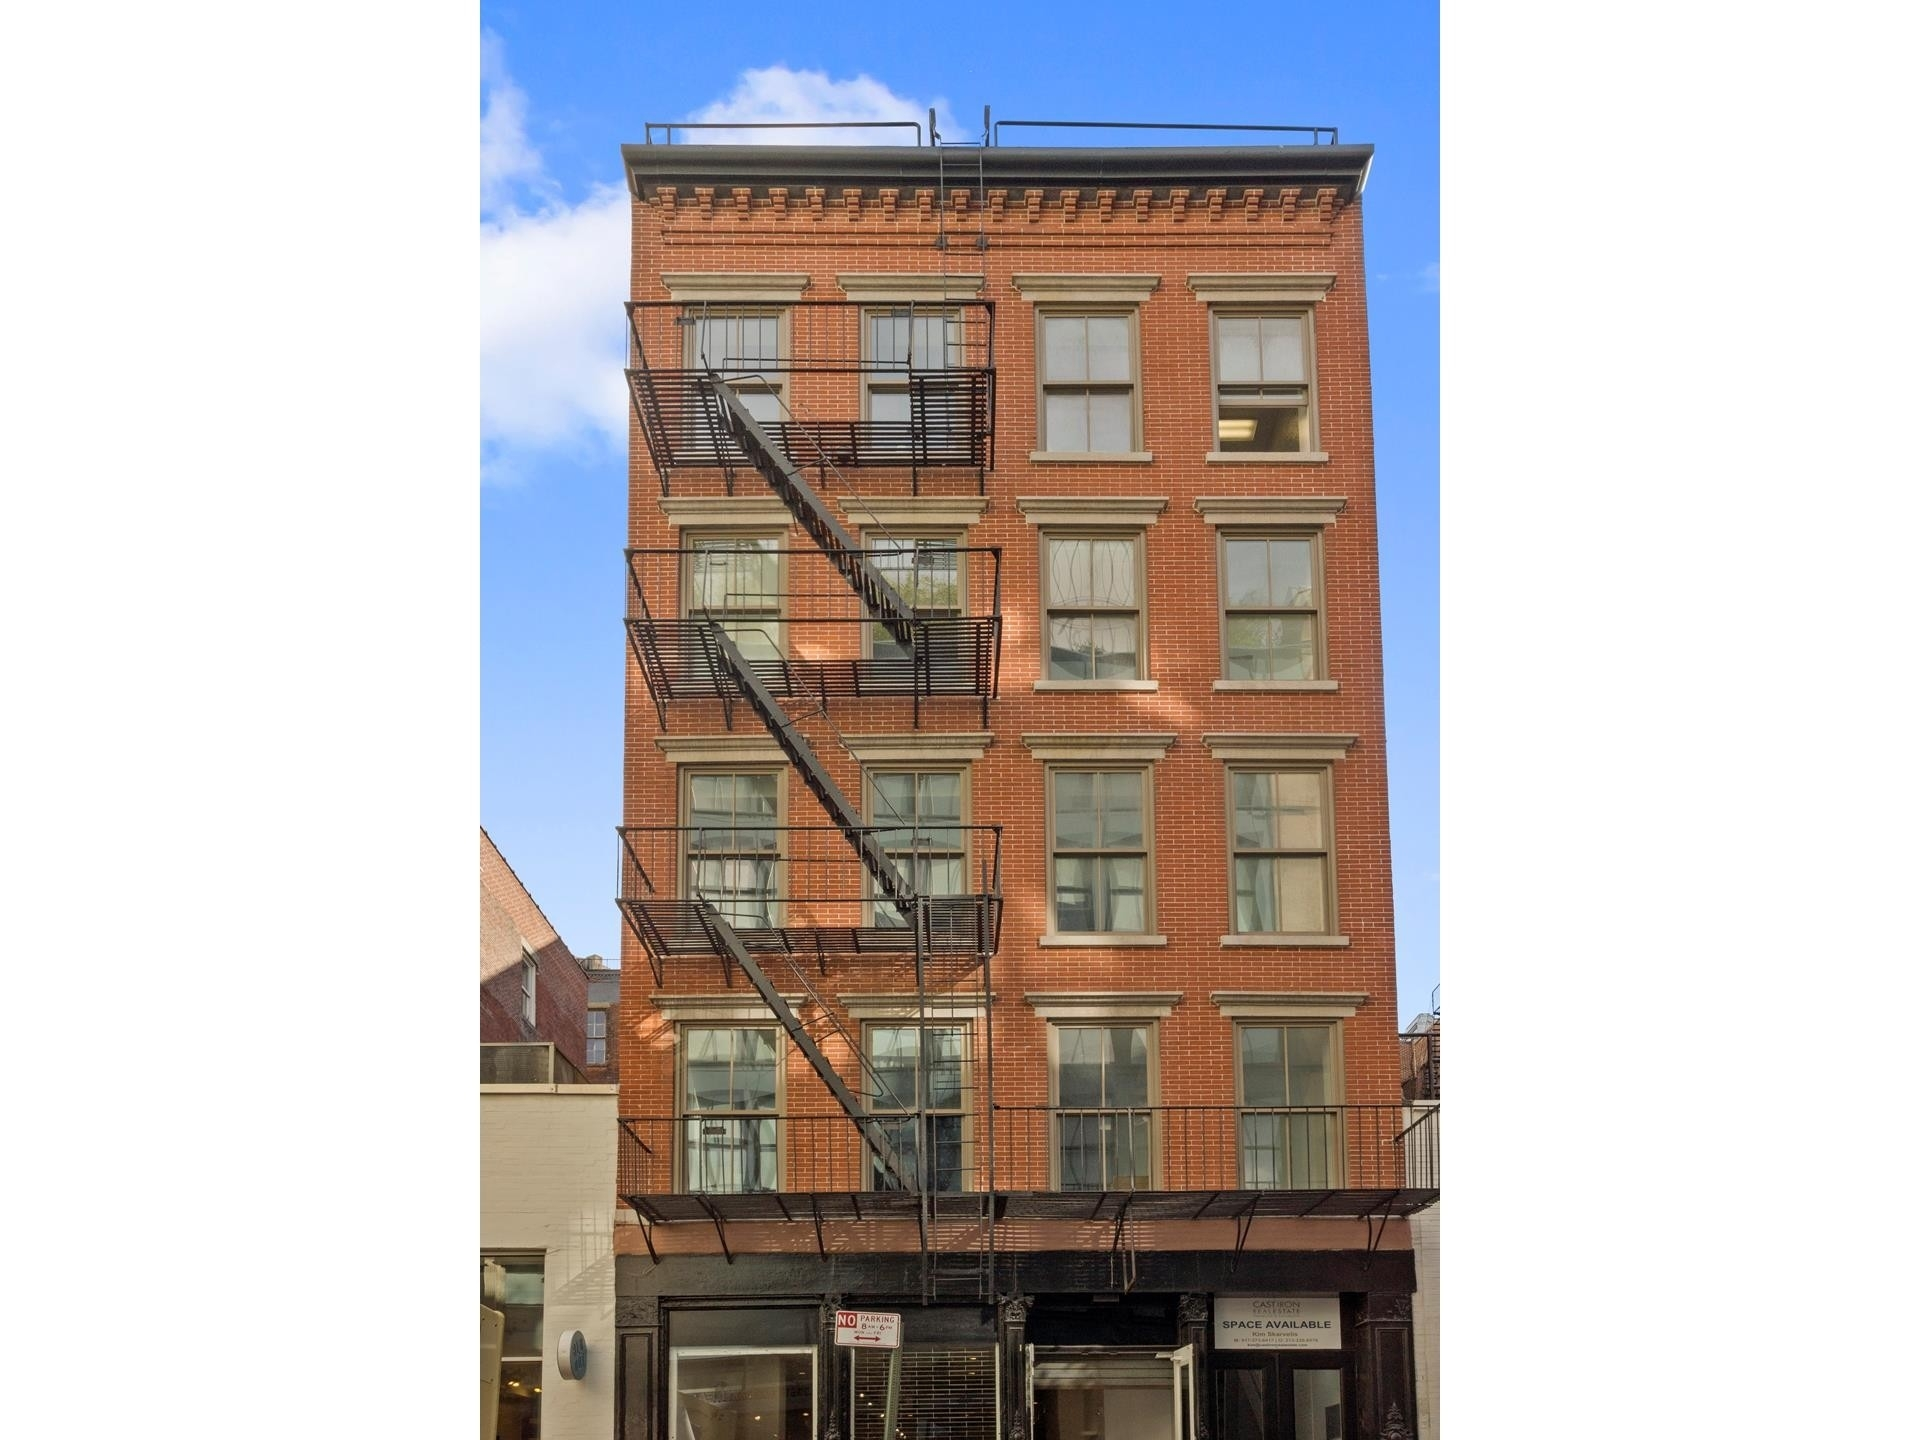 1. building at 138 Wooster St, Downtown Manhattan, New York, NY